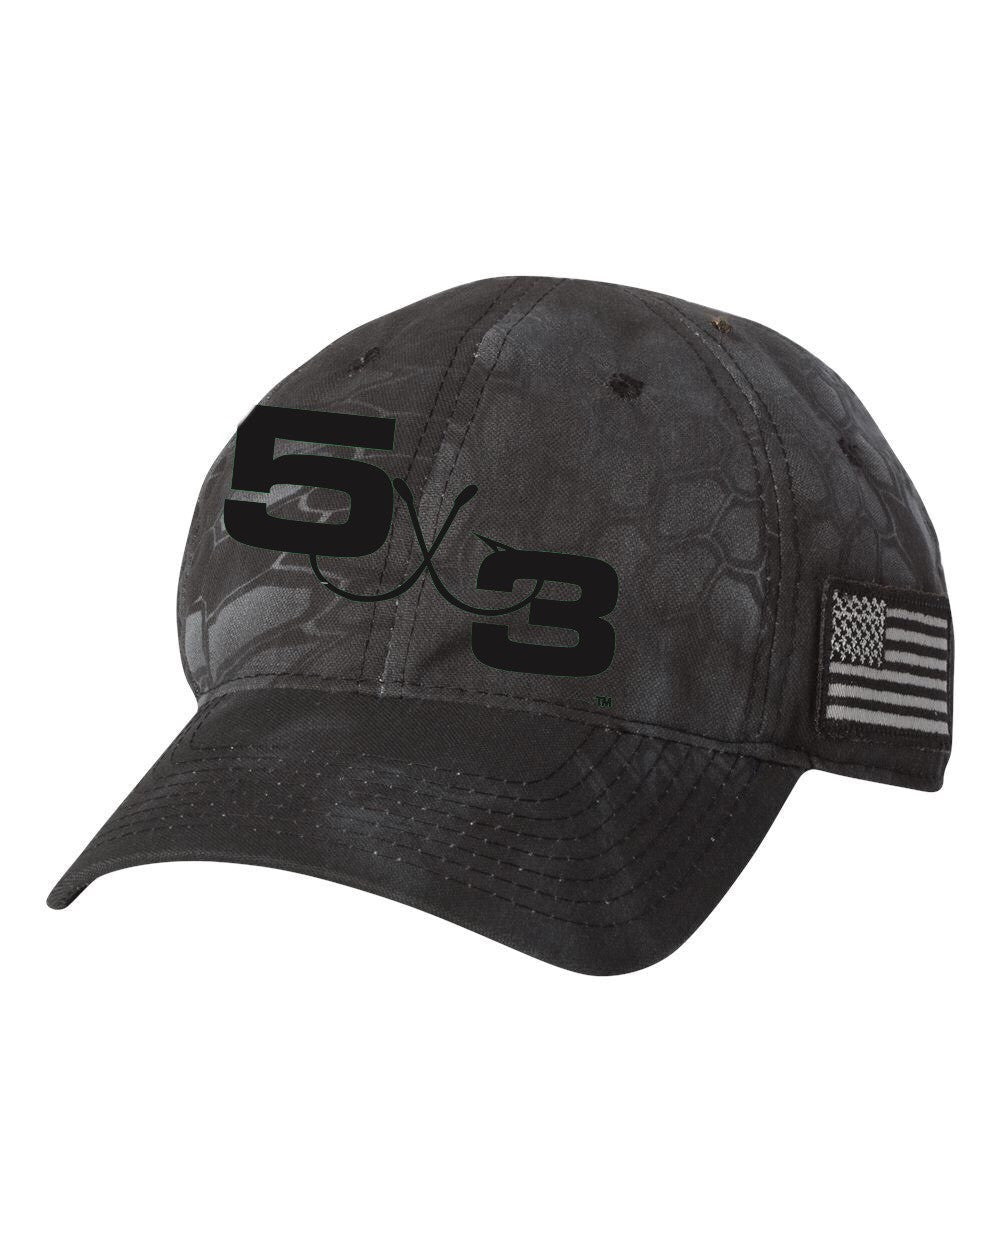 Kryptek Camo American Flag 5X3 Hat. Available in brown and black